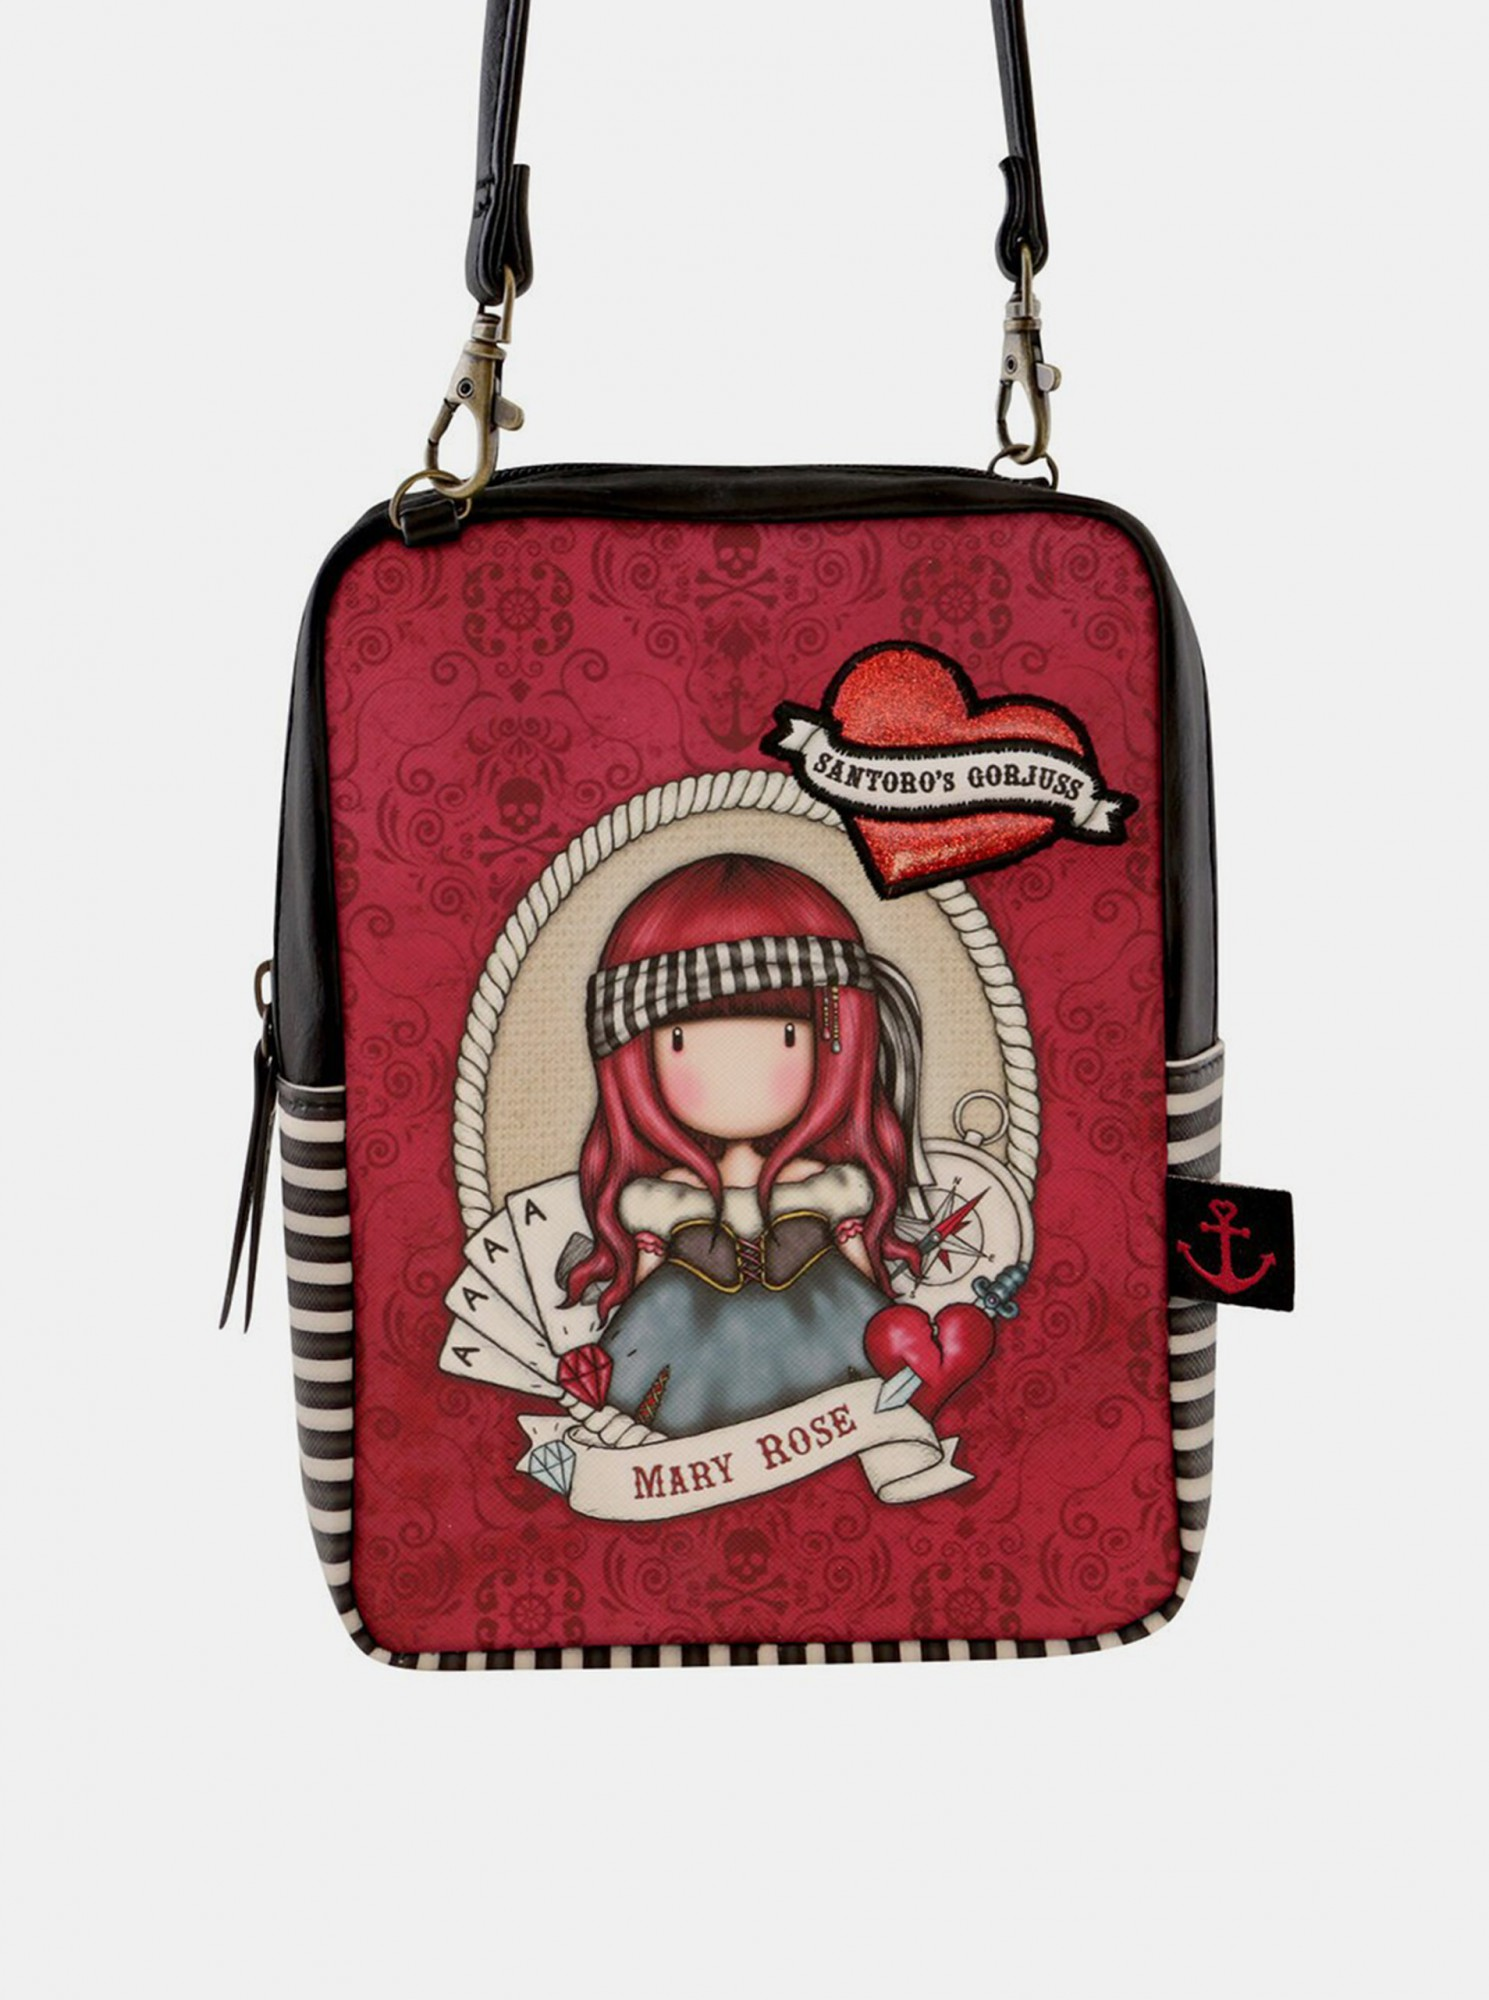 Santoro rosso crossbody borsetta Gorjuss Pirates Mary Rose